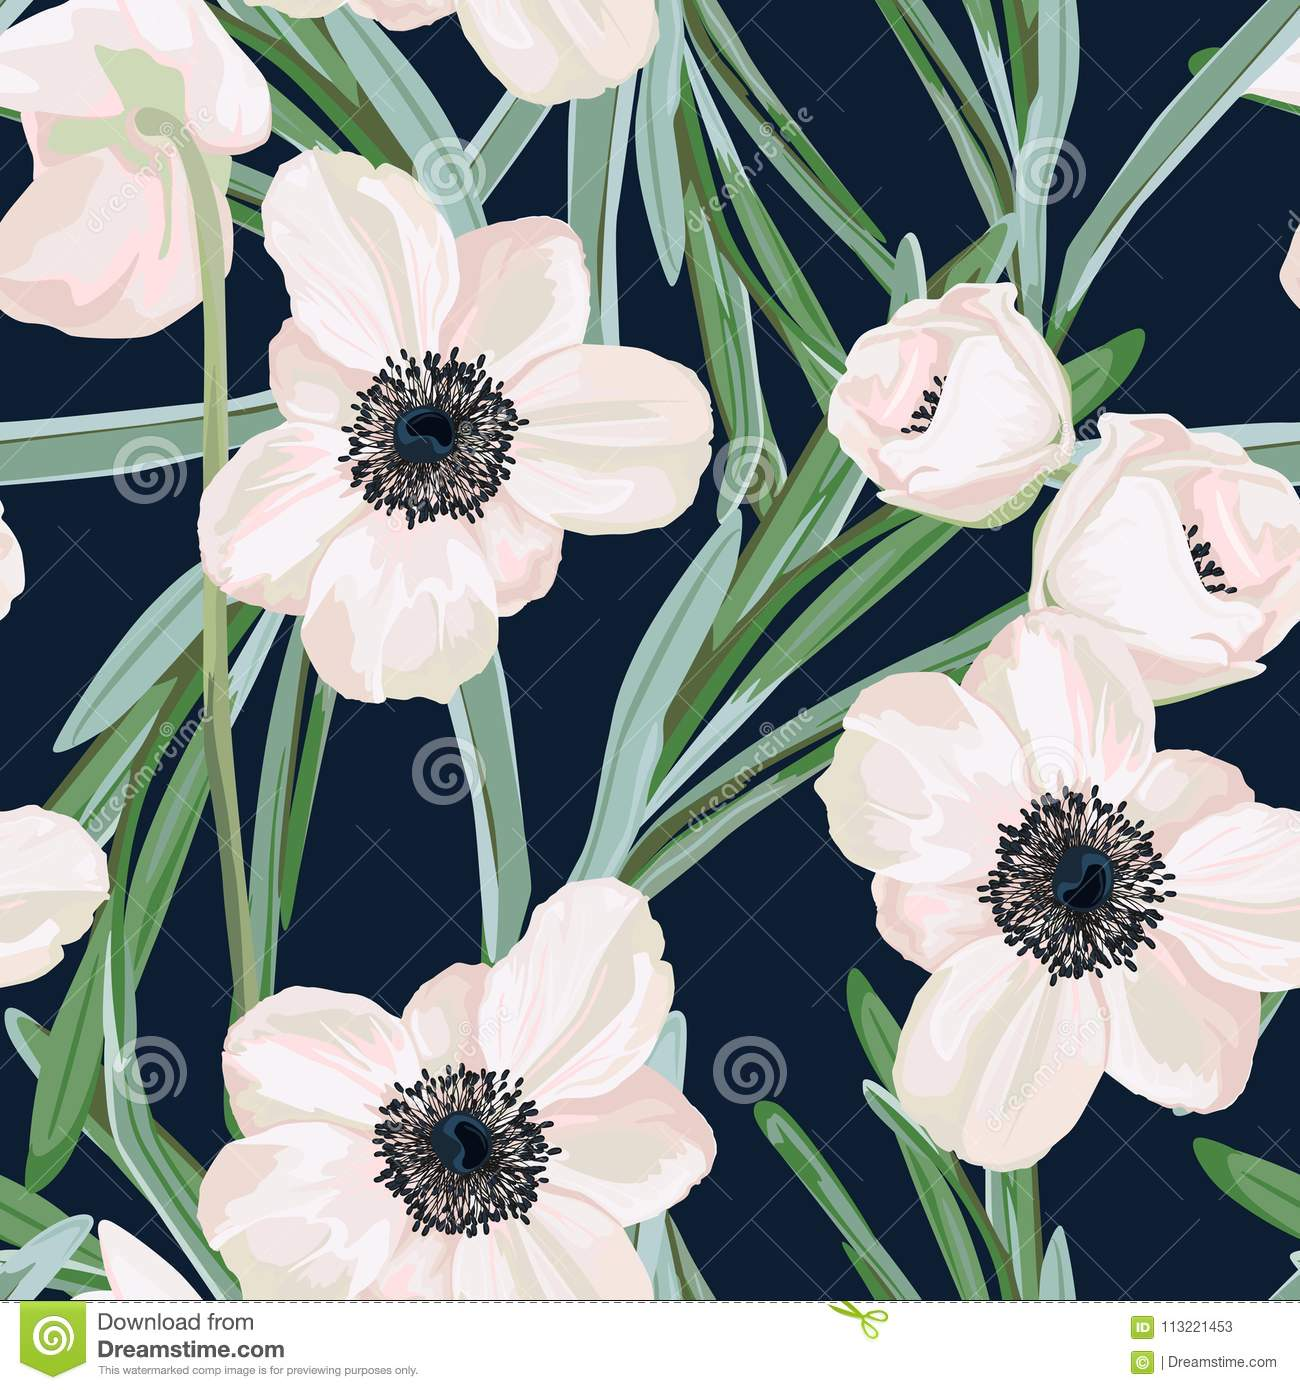 Seamless Pattern With White Anemone Flowers And Eucalyptus Winter